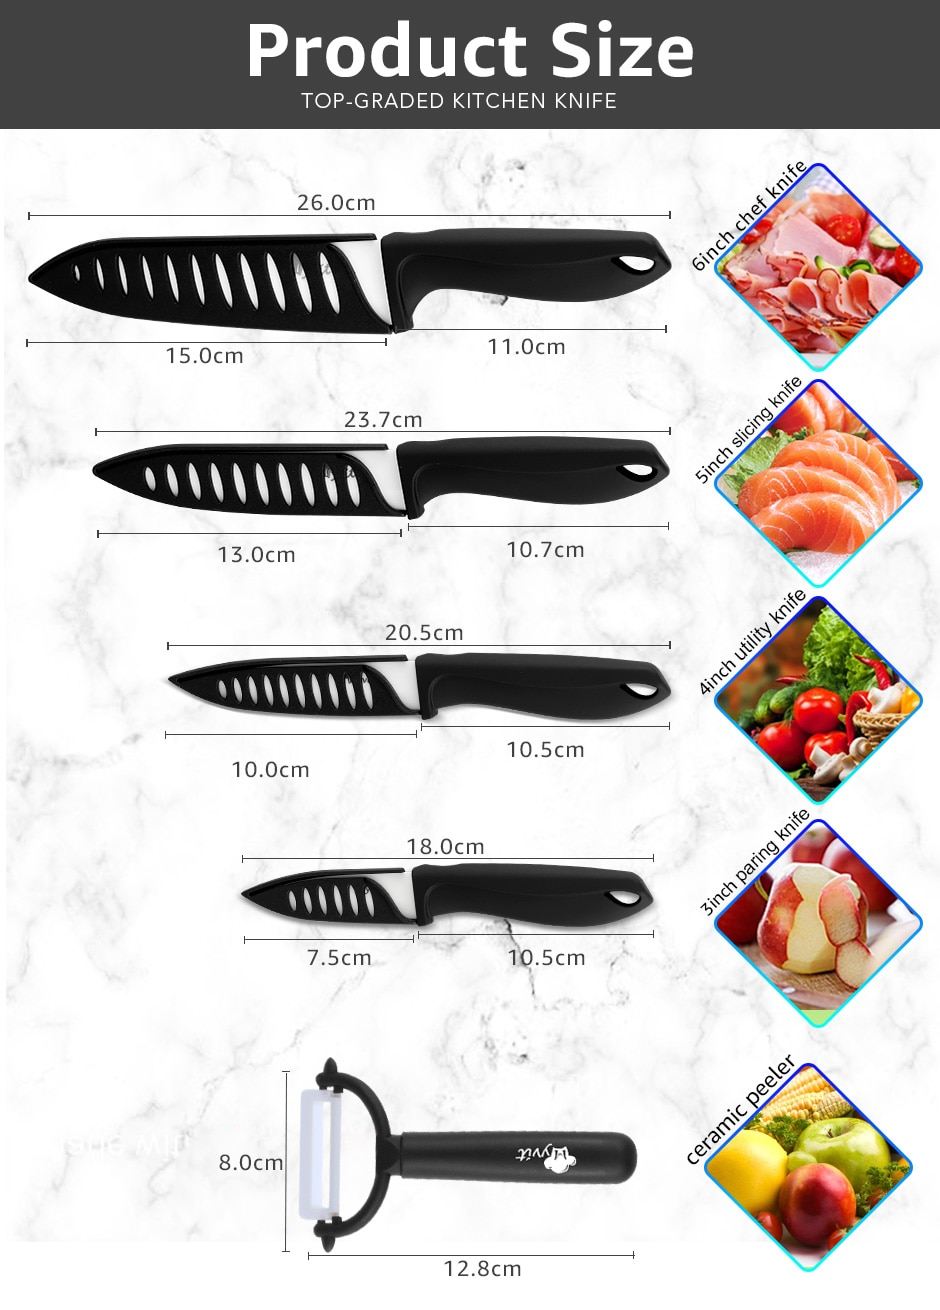 Ceramic Knife 3 4 5 6 inch Kitchen Chef Utility Slicer Paring Ceramic Knives Peeler Set White Zirconia Blade